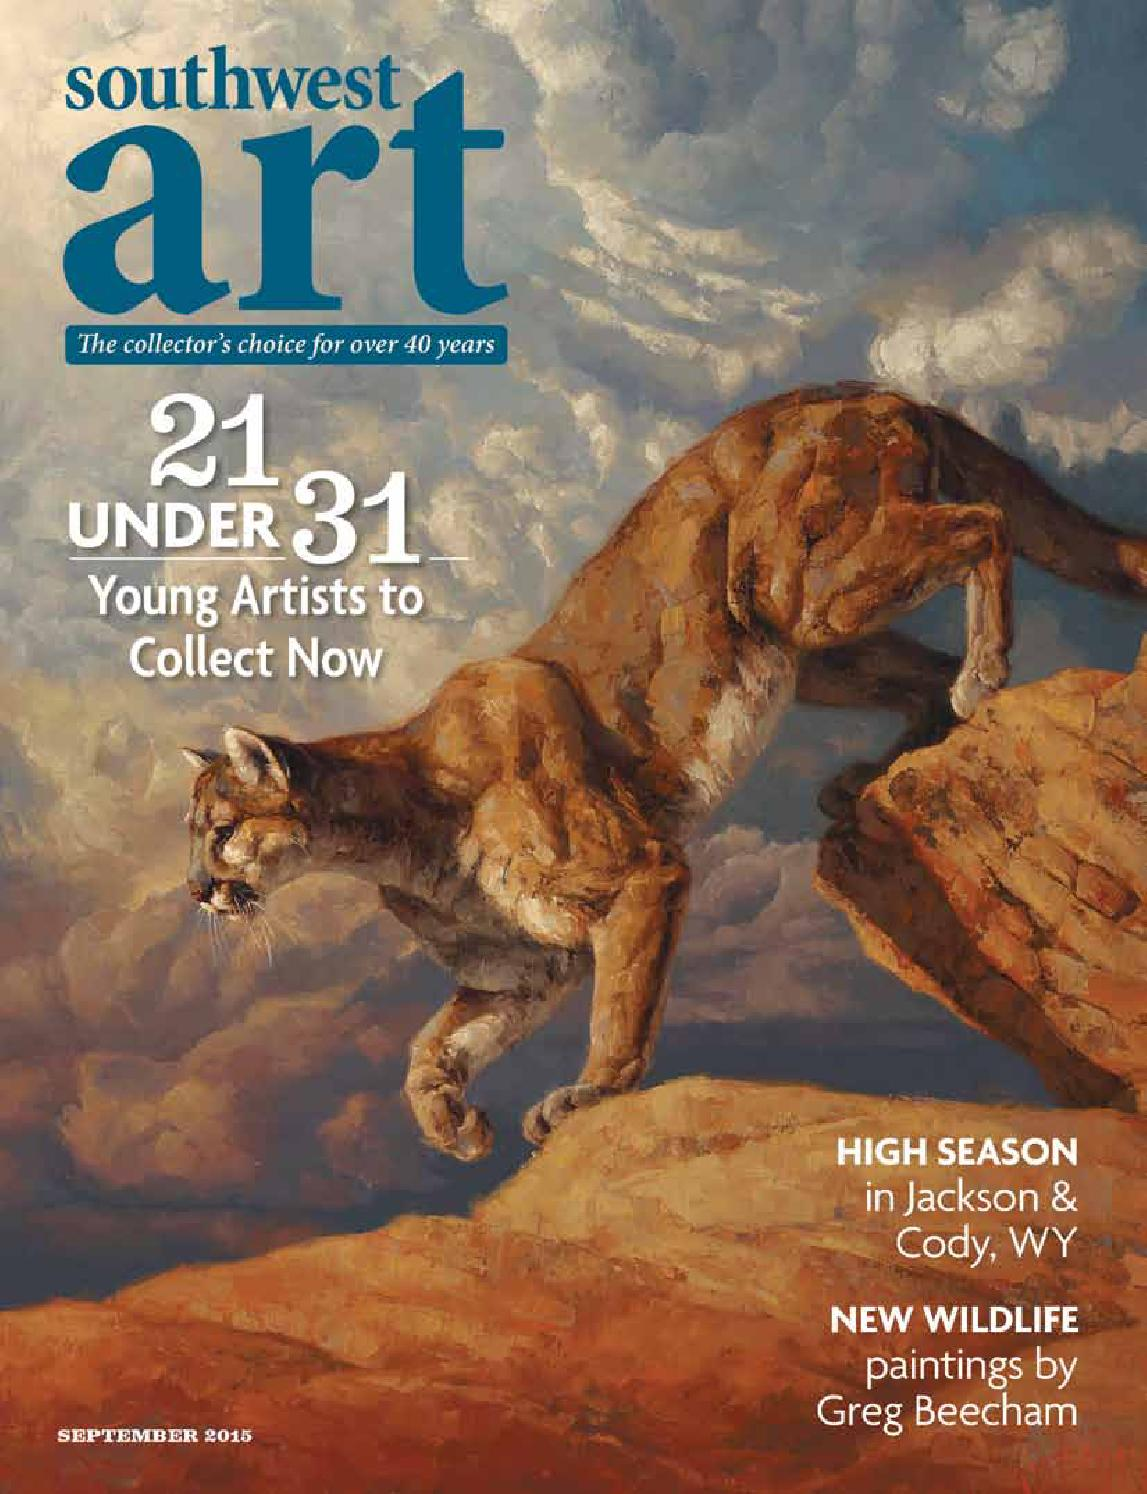 New Wildlife - September 2015Southwest Art Magazine • Western Art Collector Magazine